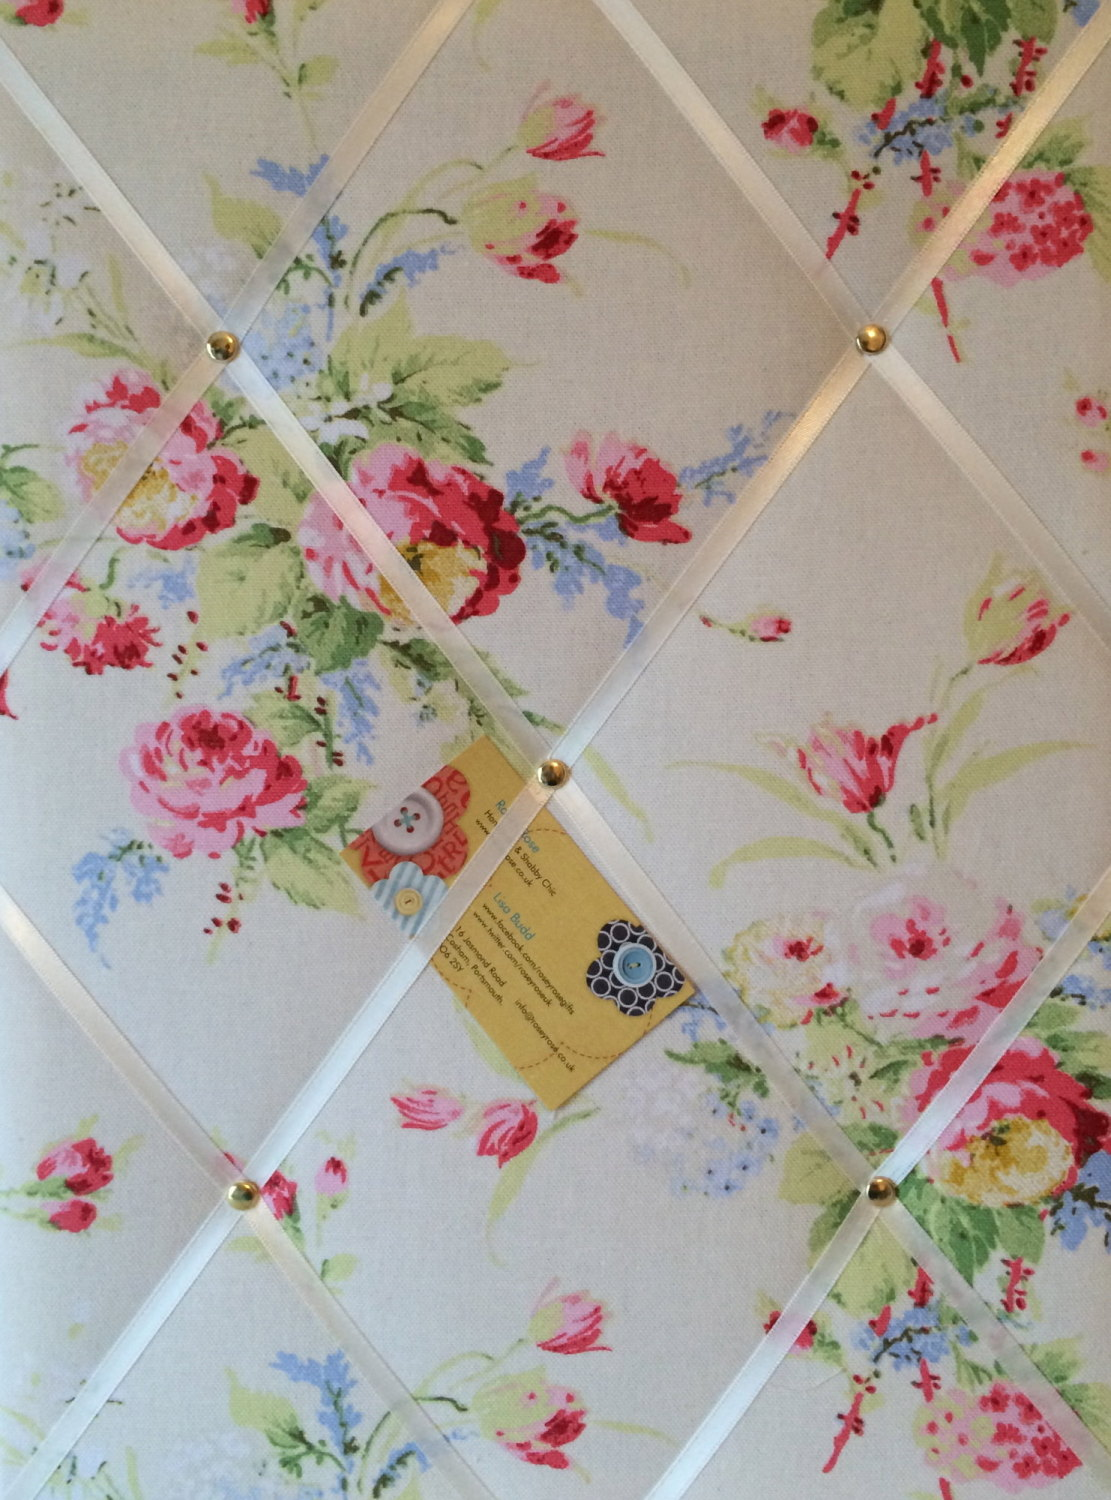 Medium 40x30cm Cath Kidston White Faded Flowers Hand Crafted Fabric Notice